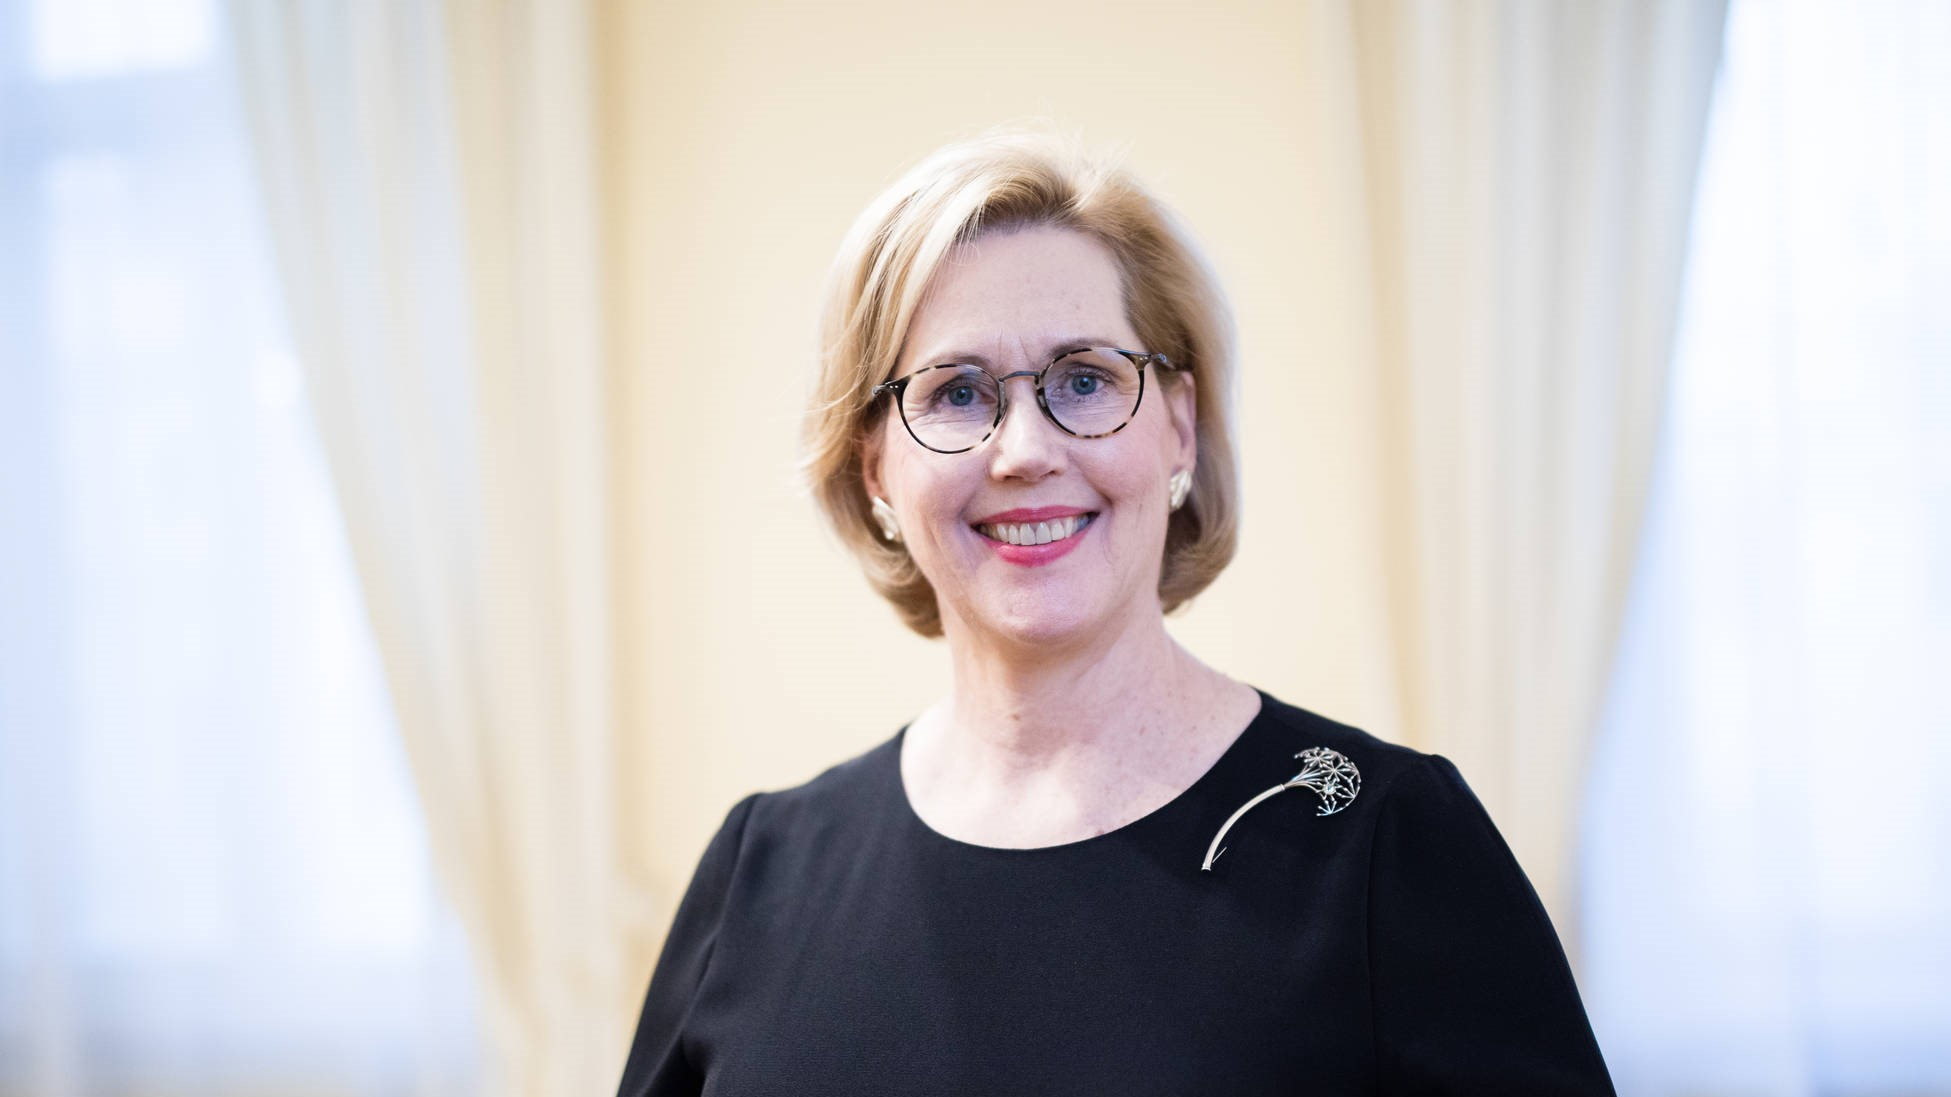 Tuula Haatainen new Finnish Minister of Employment